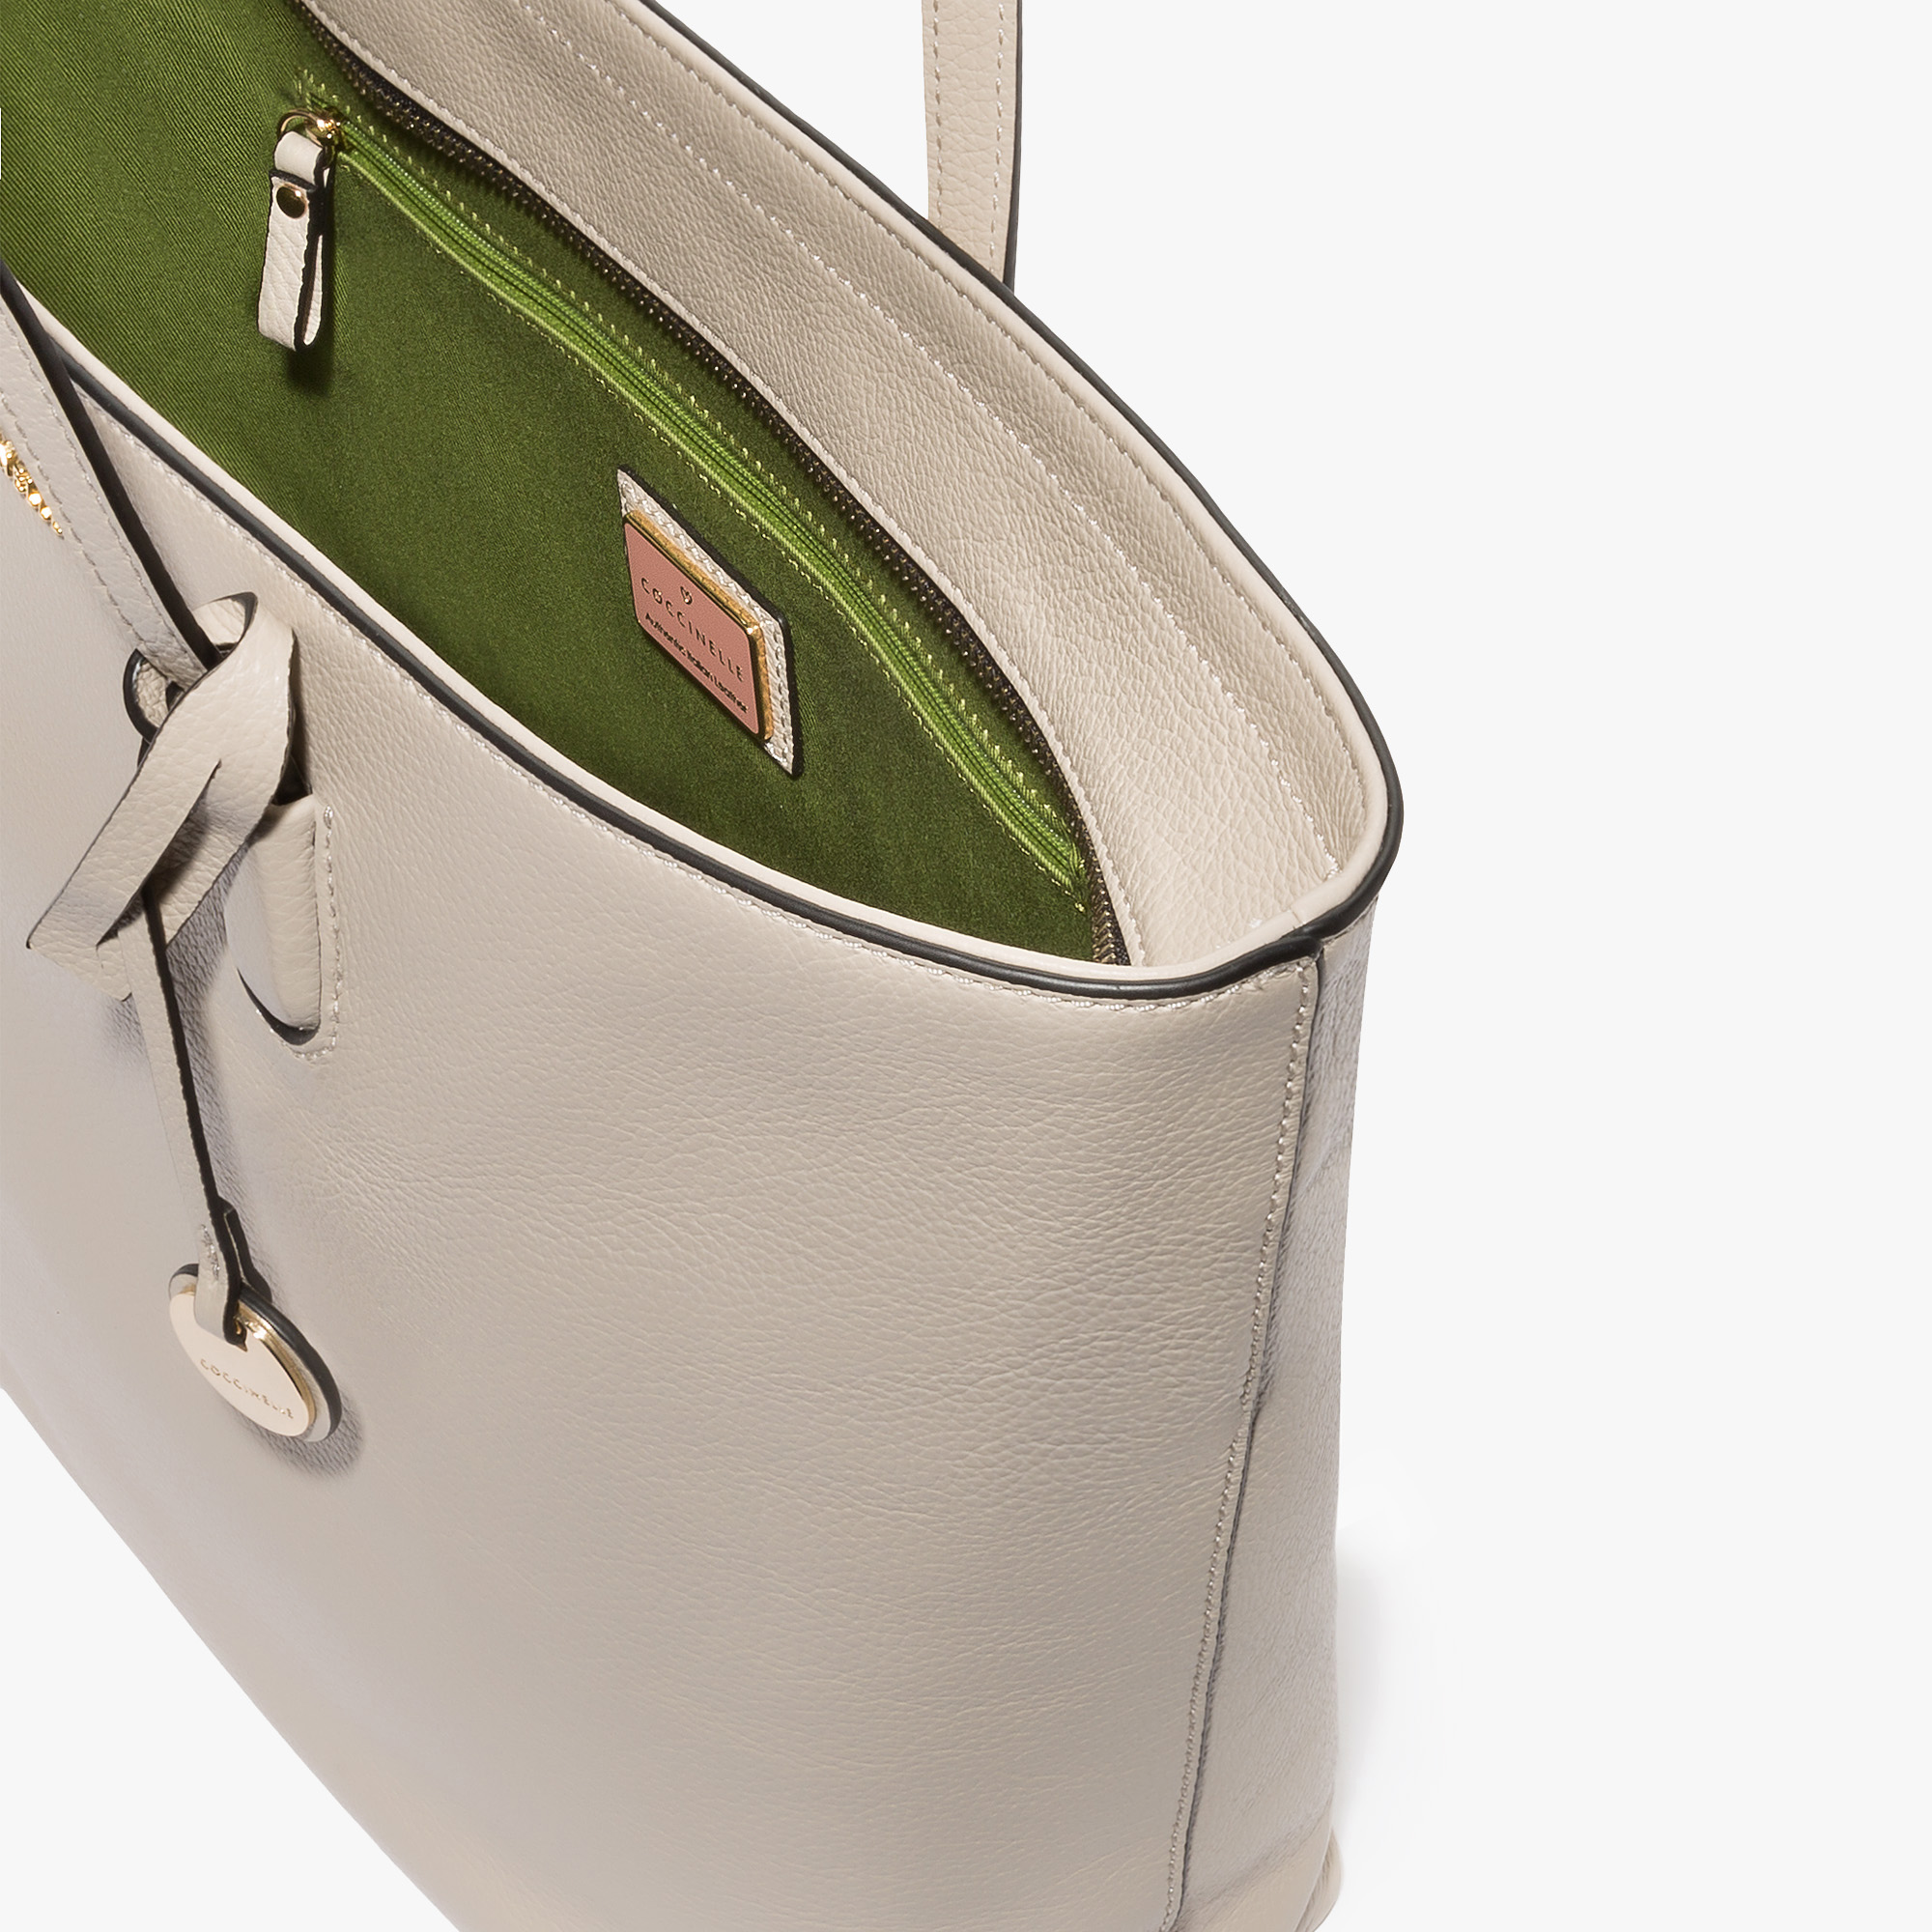 Clementine leather shopping tote